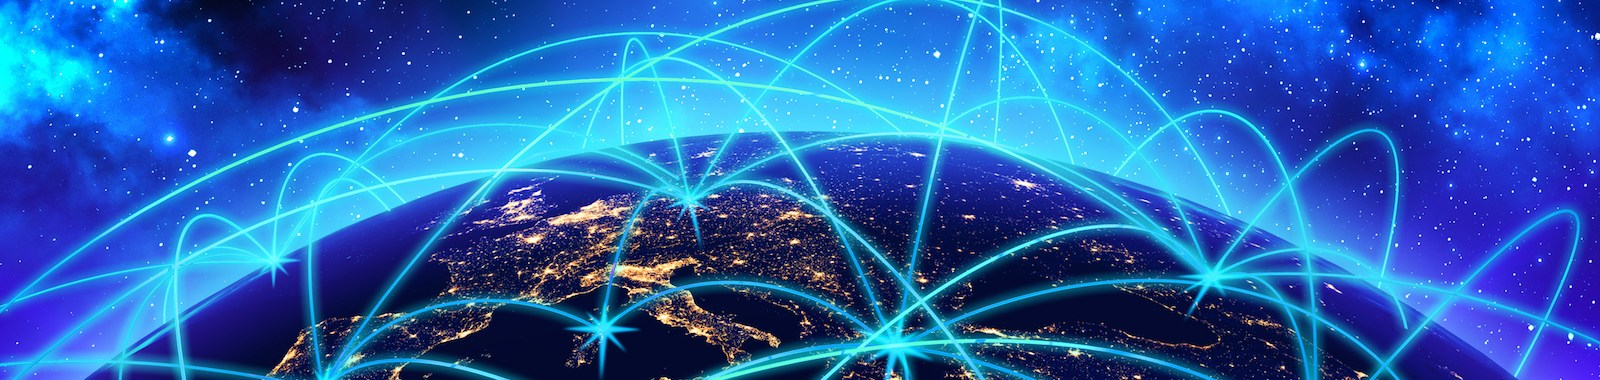 Earth globe night view with connect lines on deep blue space background.